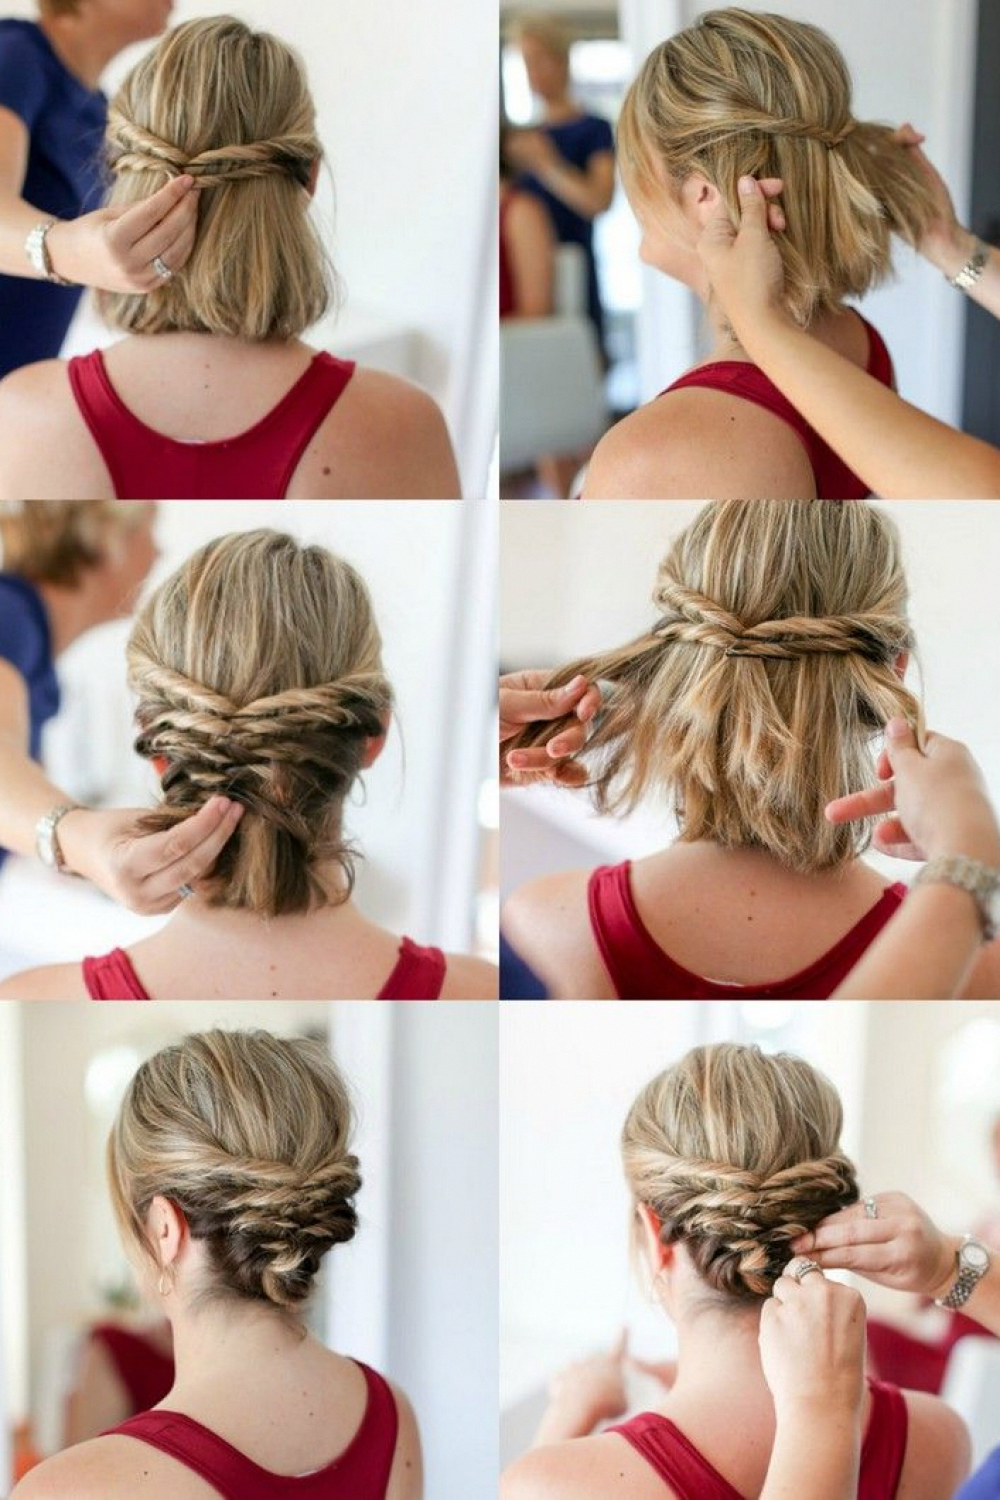 Braid Hairstyles Updo pony tails,Braid Hairstyles Updo simple,Braid Hairstyles Updo bun,Braid Hairstyles Updo fishtail,Braid Hairstyles Updo black women,Braid Hairstyles Updo wedding,Braid Hairstyles Updo tutorials,short Braid Hairstyles Updo,boho Braid Hairstyles Updo,Braid Hairstyles Updo crown,box Braid Hairstyles Updo,twist Braid Hairstyles Updo,Braid Hairstyles Updo casual,Braid Hairstyles Updo for sports,Braid Hairstyles Updo prom #weddingbraids